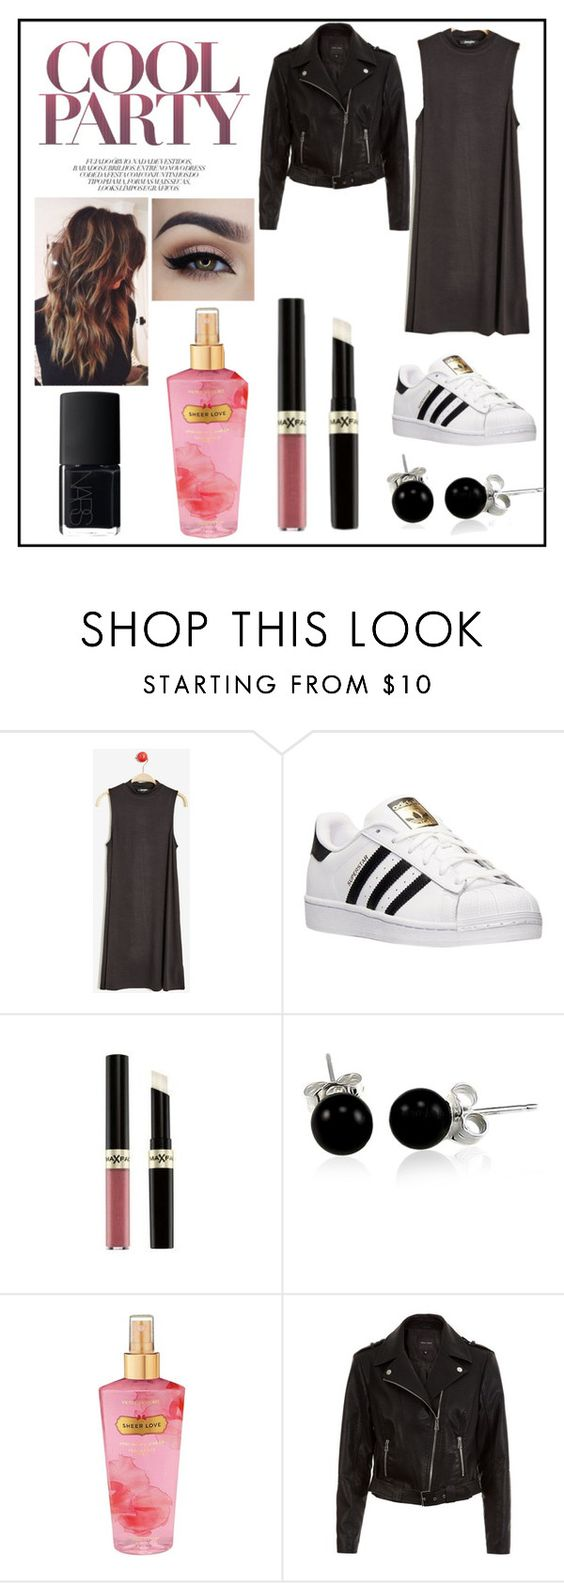 """""""Cool Party"""" by chloenav23 ❤ liked on Polyvore featuring adidas, Bling Jewelry, Victoria's Secret, New Look and NARS Cosmetics"""